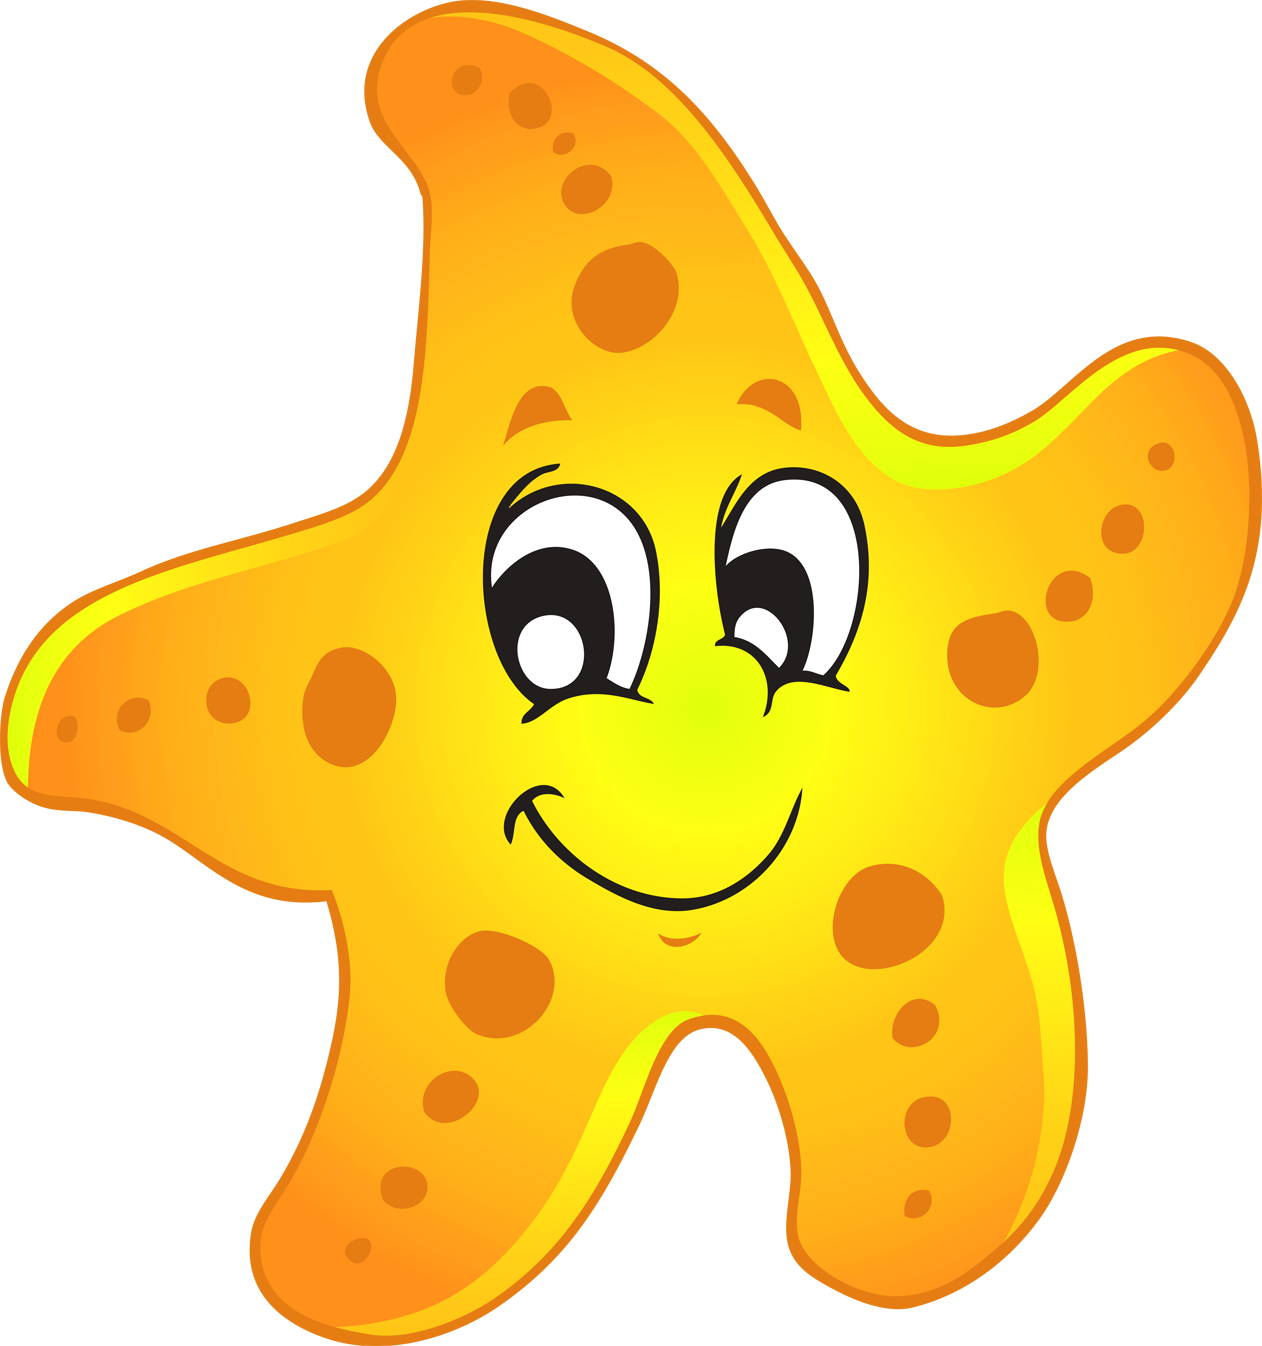 Ocean star clipart clip library library Free Ocean Starfish Cliparts, Download Free Clip Art, Free Clip Art ... clip library library